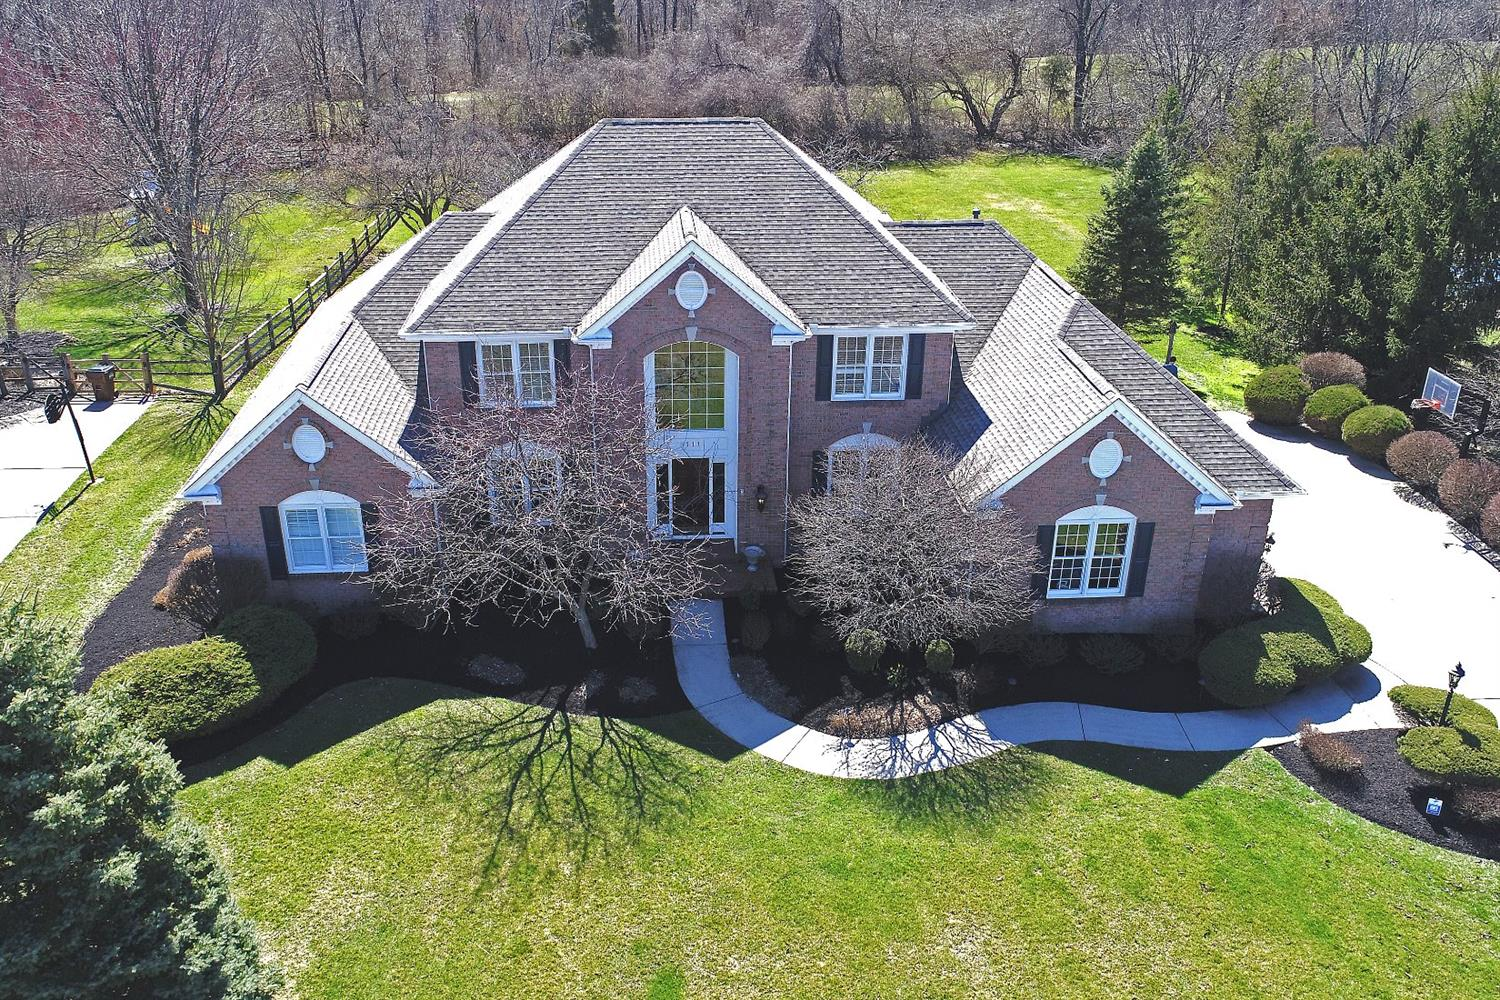 Pristine/spacious/bright/1-owner Sanctuary of Ivy Hills abode*Updated eat-in Kit w/granite, Wolf & Subzero is open to a 2-story Great Rm *1st floor Master w/ensuite BA/dual walk-in closets*Expansive LL w/awesome English pub, exercise rm & poss 5th BR w/full BA * Private/Flat.961 acre lot backs up to a green space park *oversized side entry 3-car GA